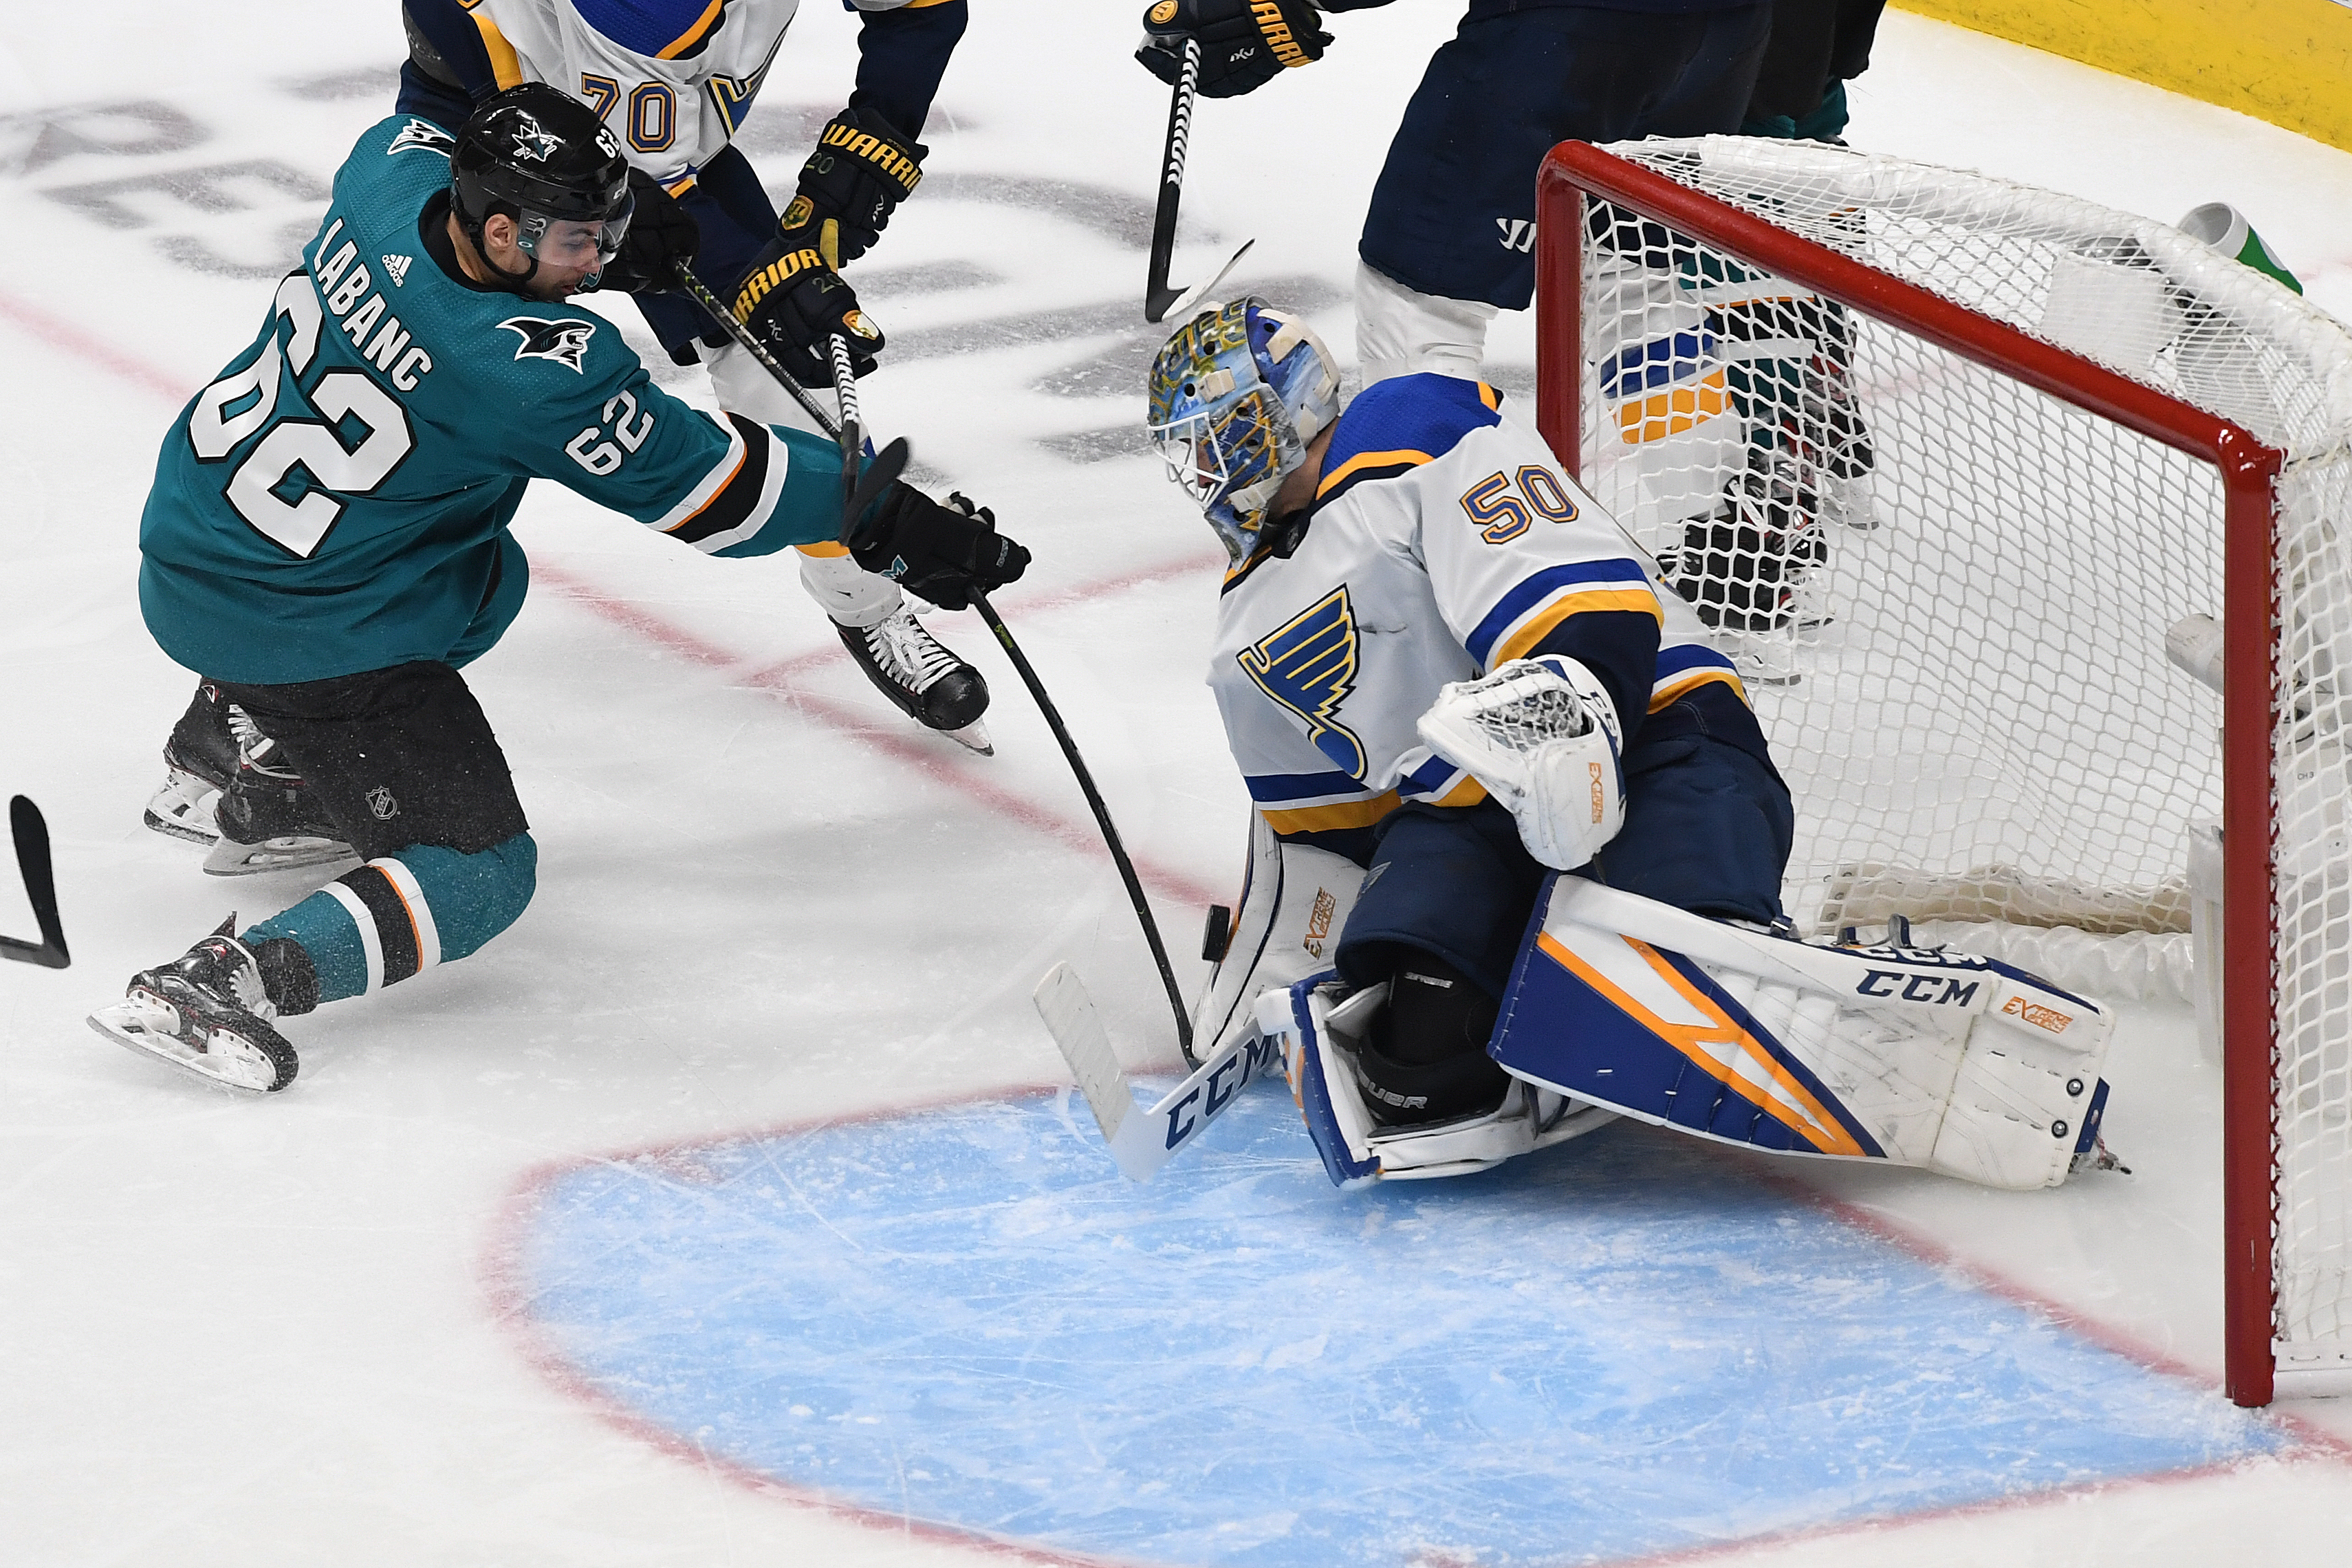 Jordan Binnington of the St. Louis Blues makes a save on a shot by Kevin Labanc of the San Jose Sharks in Game 5 of the Western Conference Final during the 2019 NHL Stanley Cup Playoffs at SAP Center on May 19, 2019 in San Jose, California.